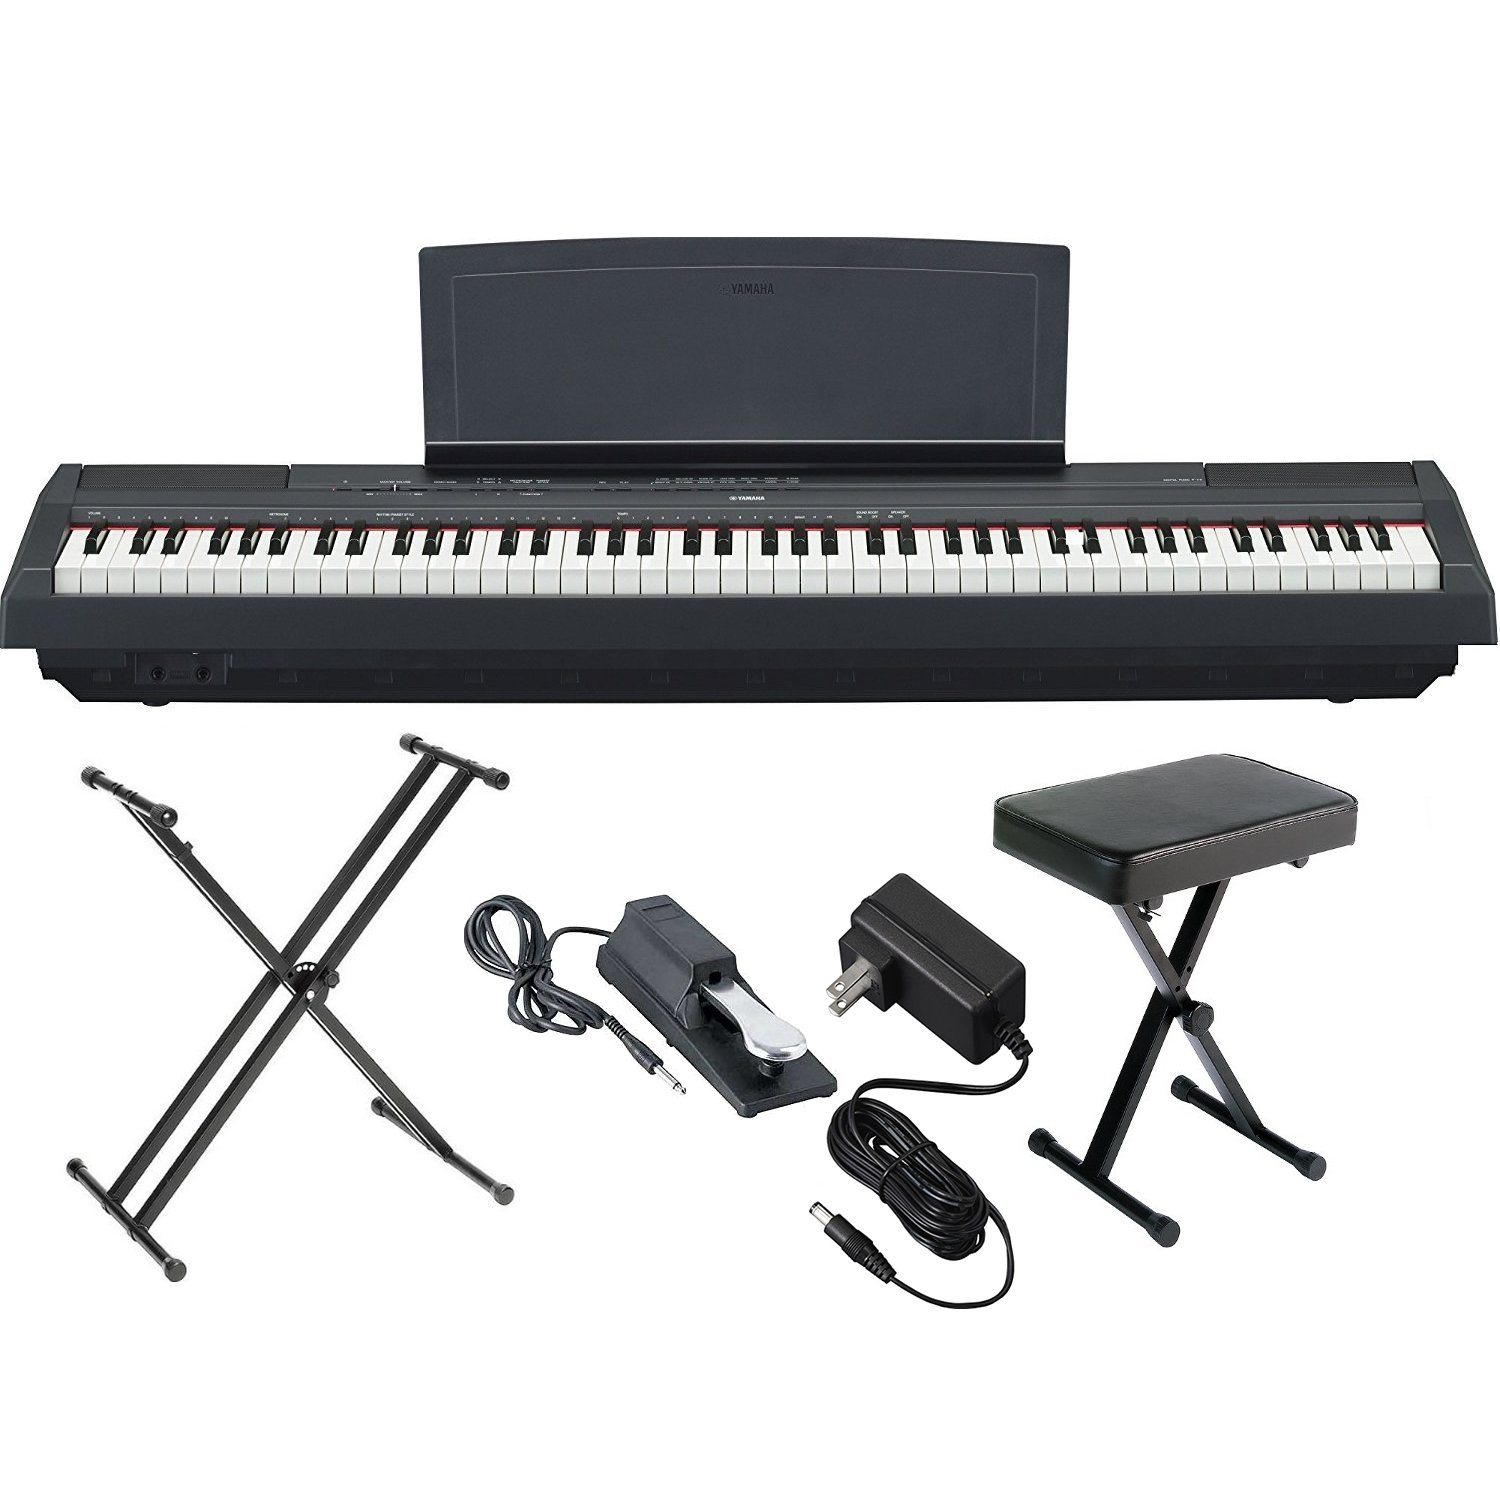 Yamaha P125B 88-Key Weighted Action Digital Piano with Sustain Pedal, Power Supply, Double-Braced X-Style Keyboard Stand, and Padded X-Style Piano Bench by Yamaha Genesis (Image #1)